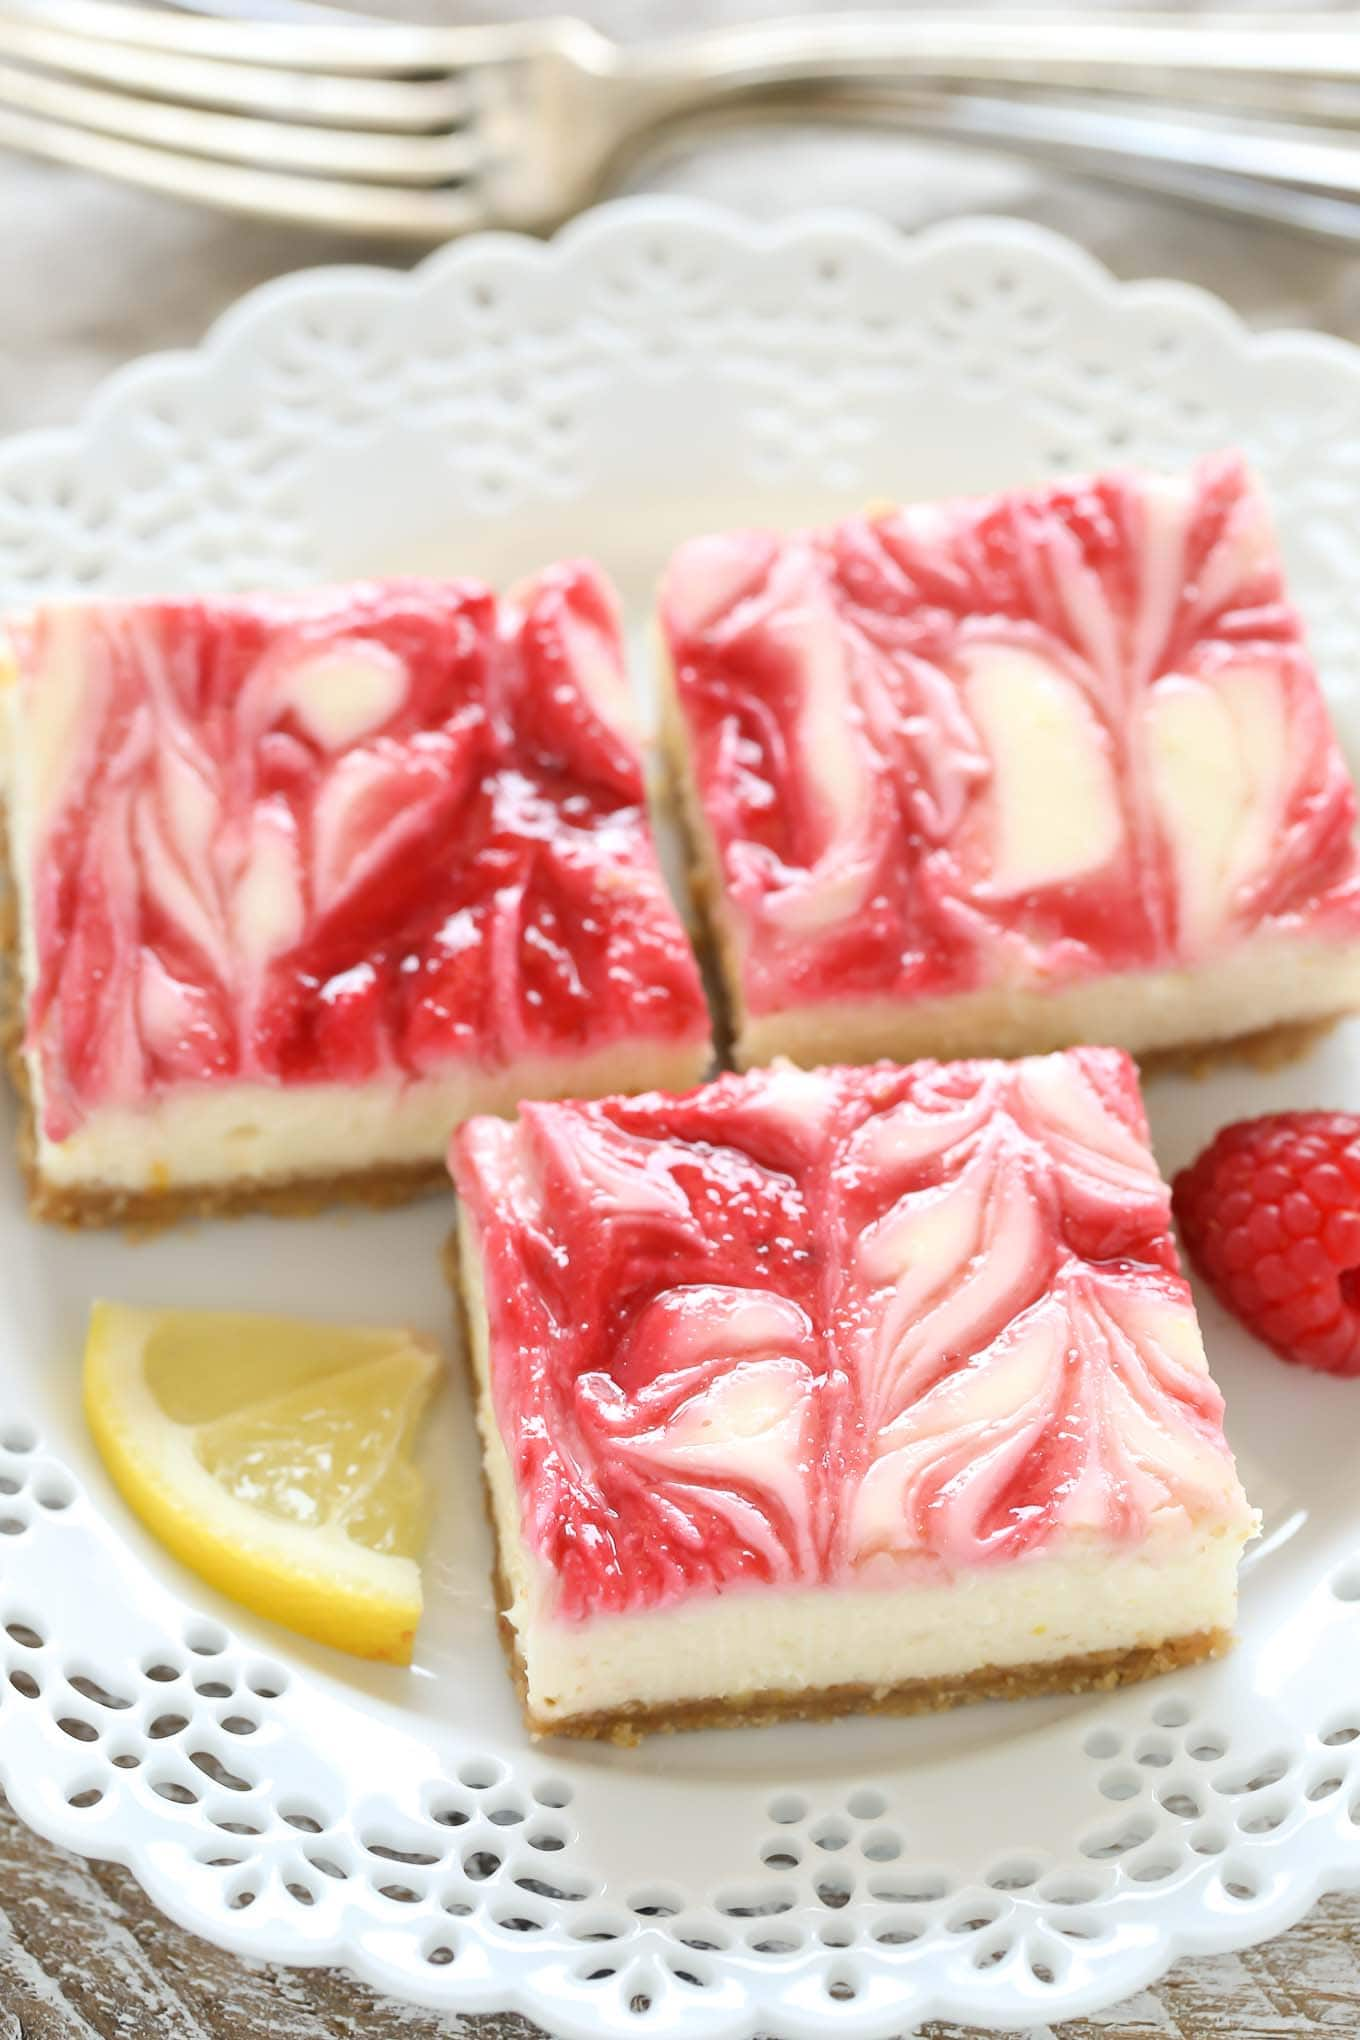 These Lemon Raspberry Cheesecake Bars feature a smooth and creamy lemon cheesecake filling with a raspberry swirl topped on a homemade graham cracker crust.